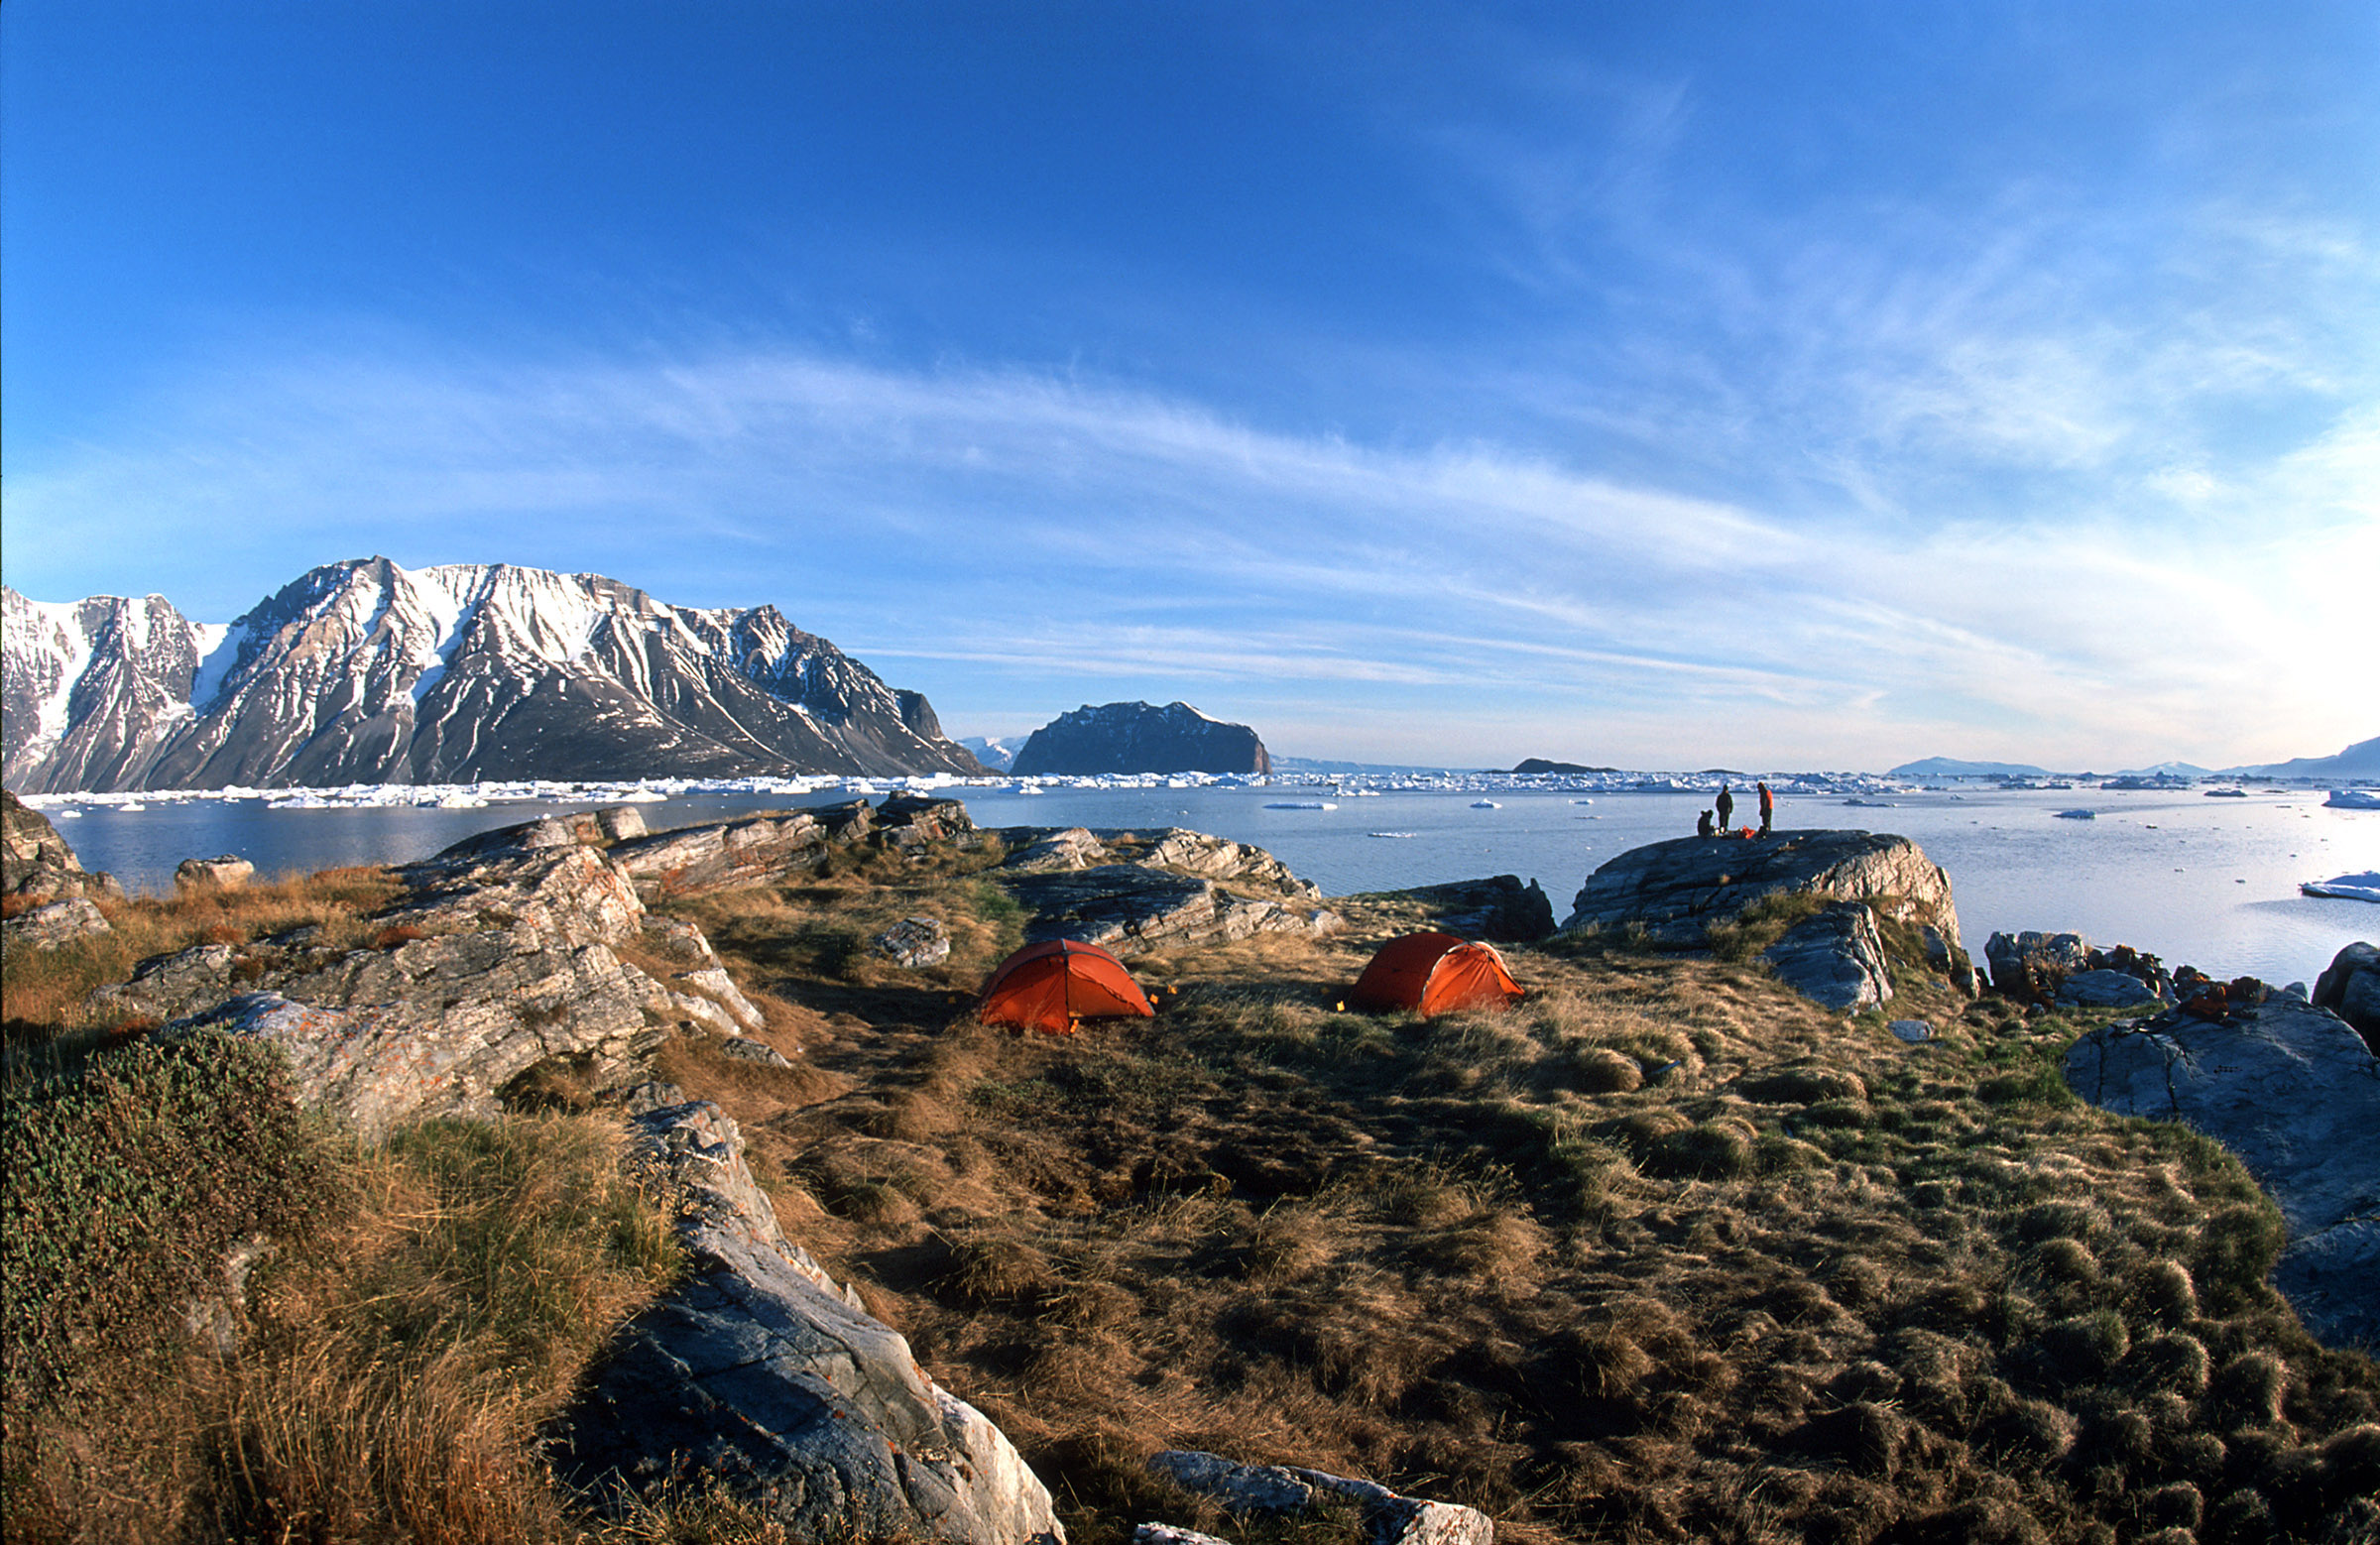 greenland-campsite-outdoor-tent-adventure